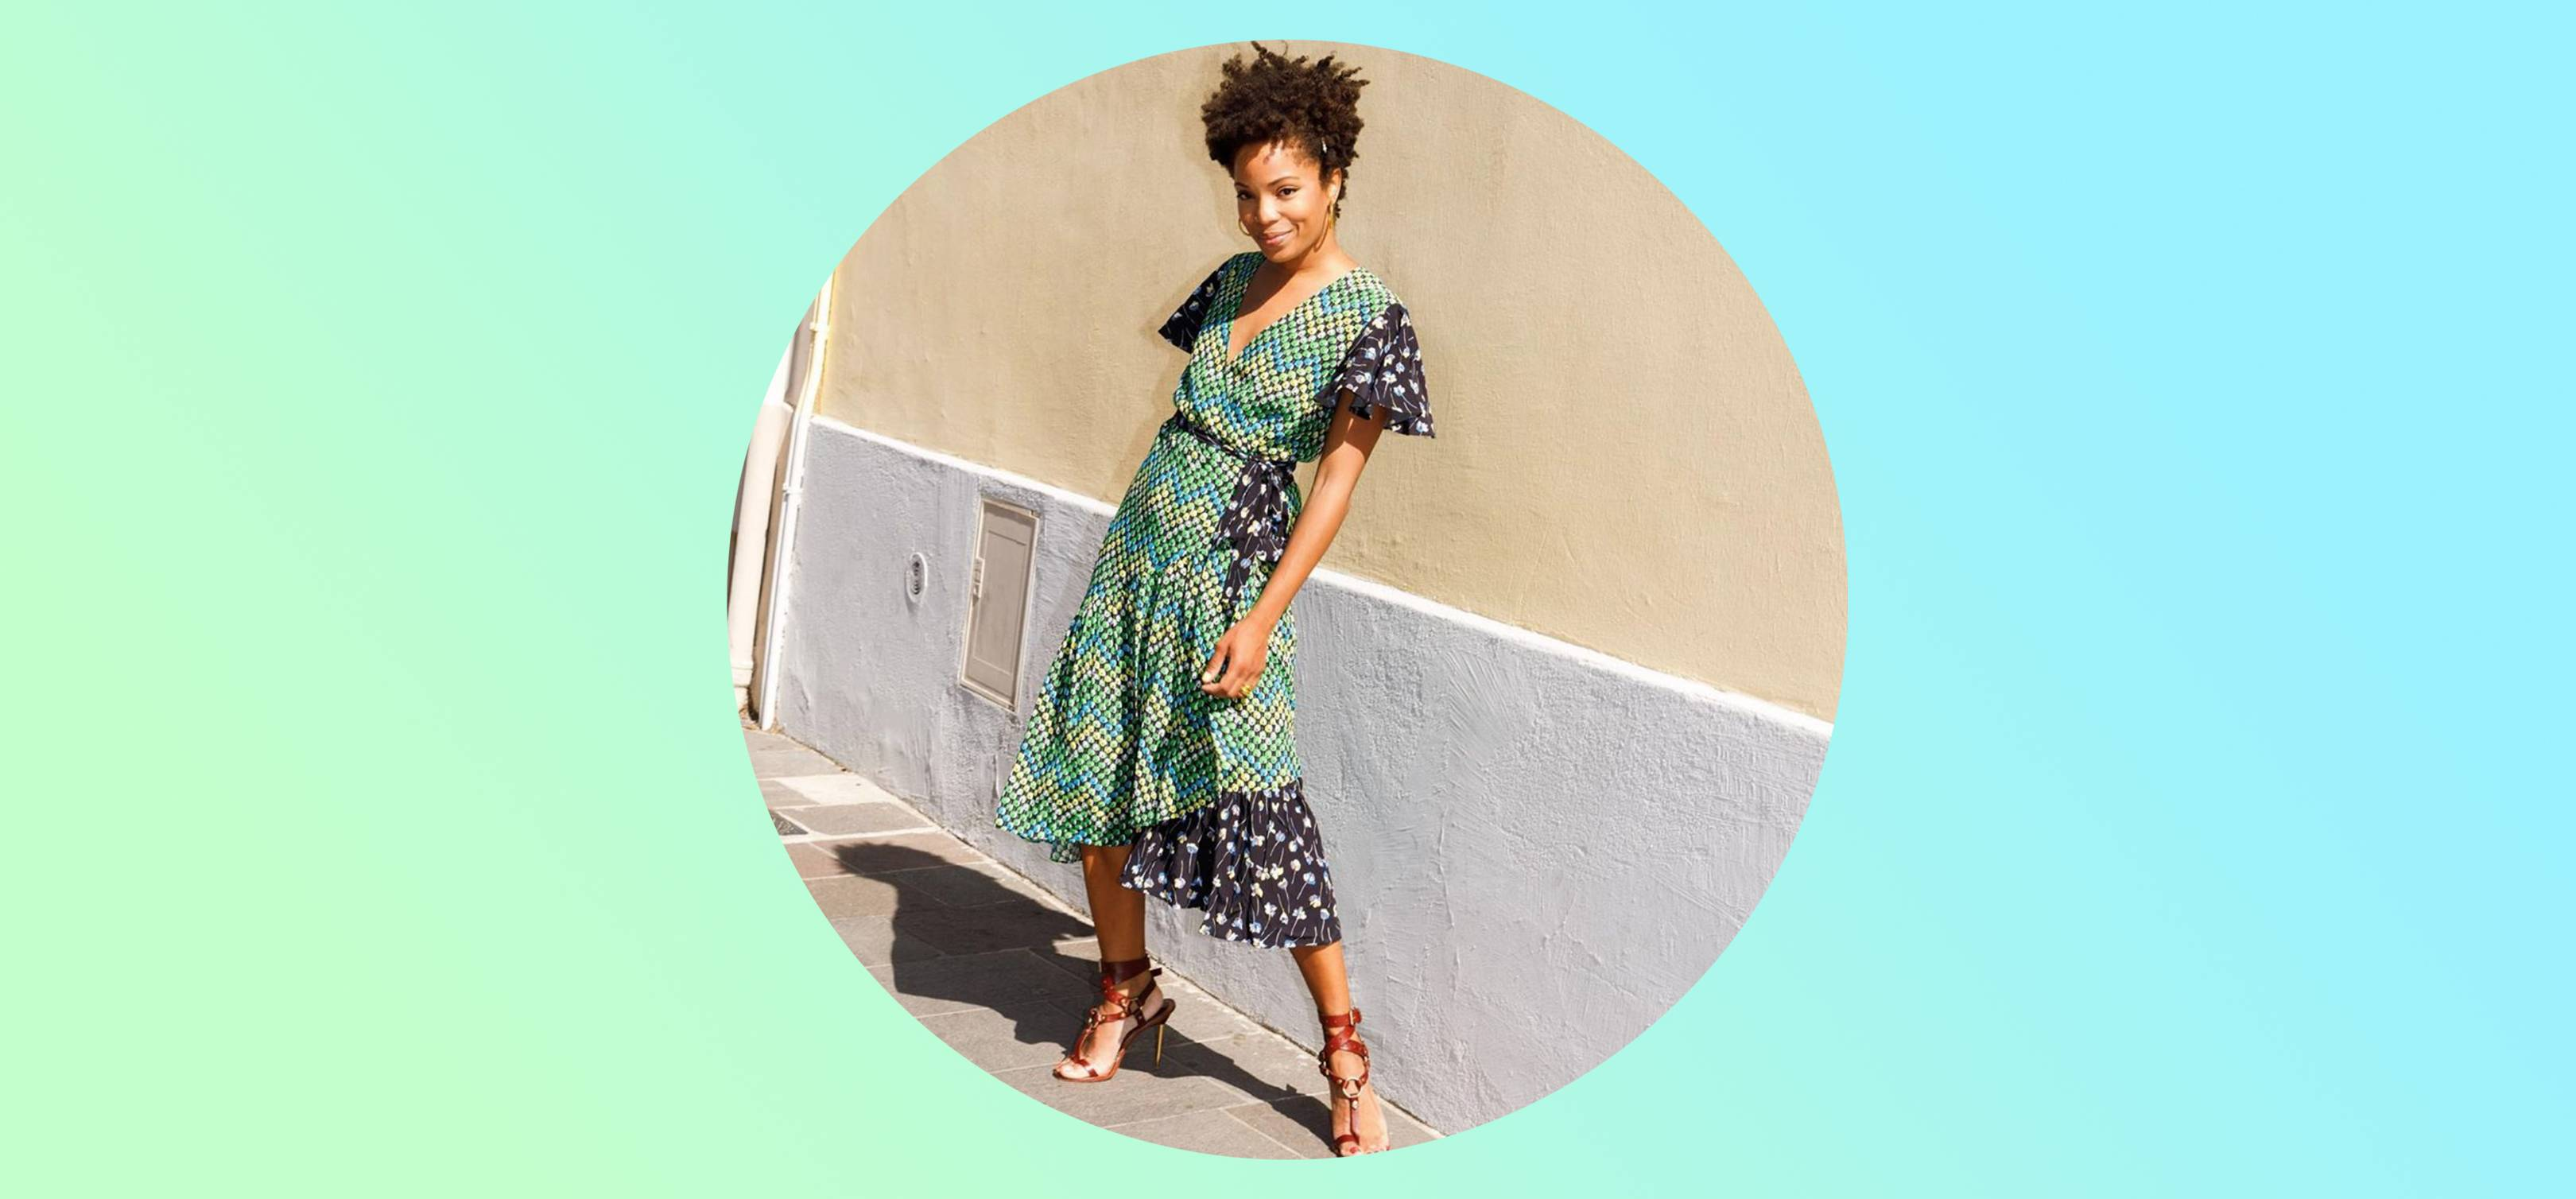 This summer dress collection is flying off shelves this season (so get it before everyone else)